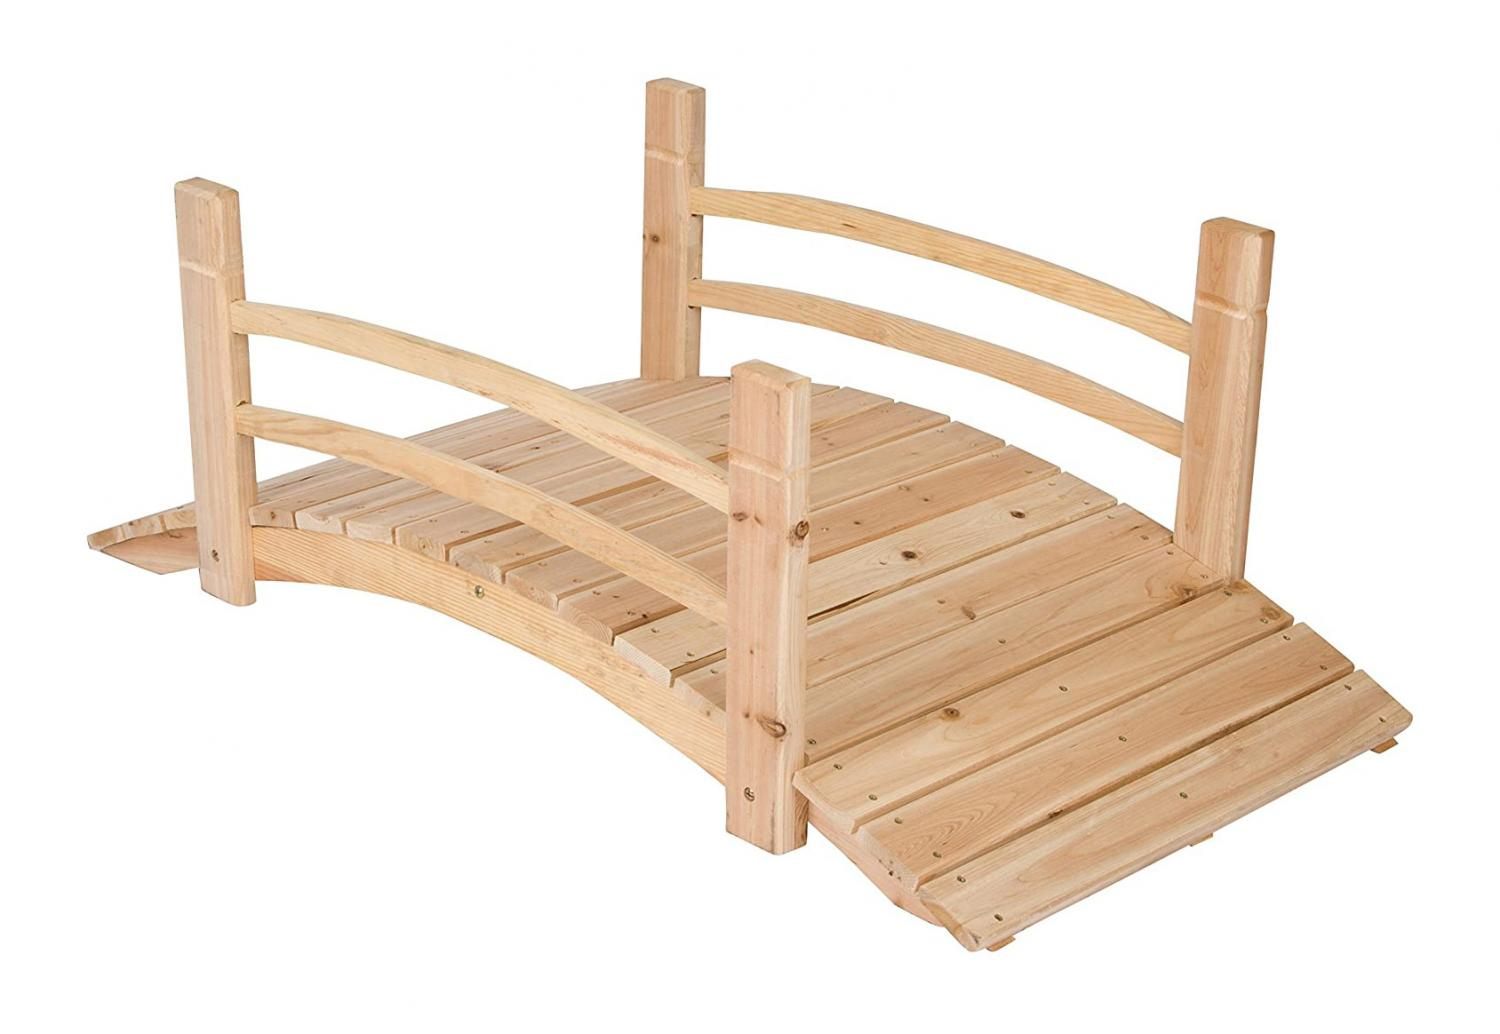 Wooden bridge for roll-out wooden pathway